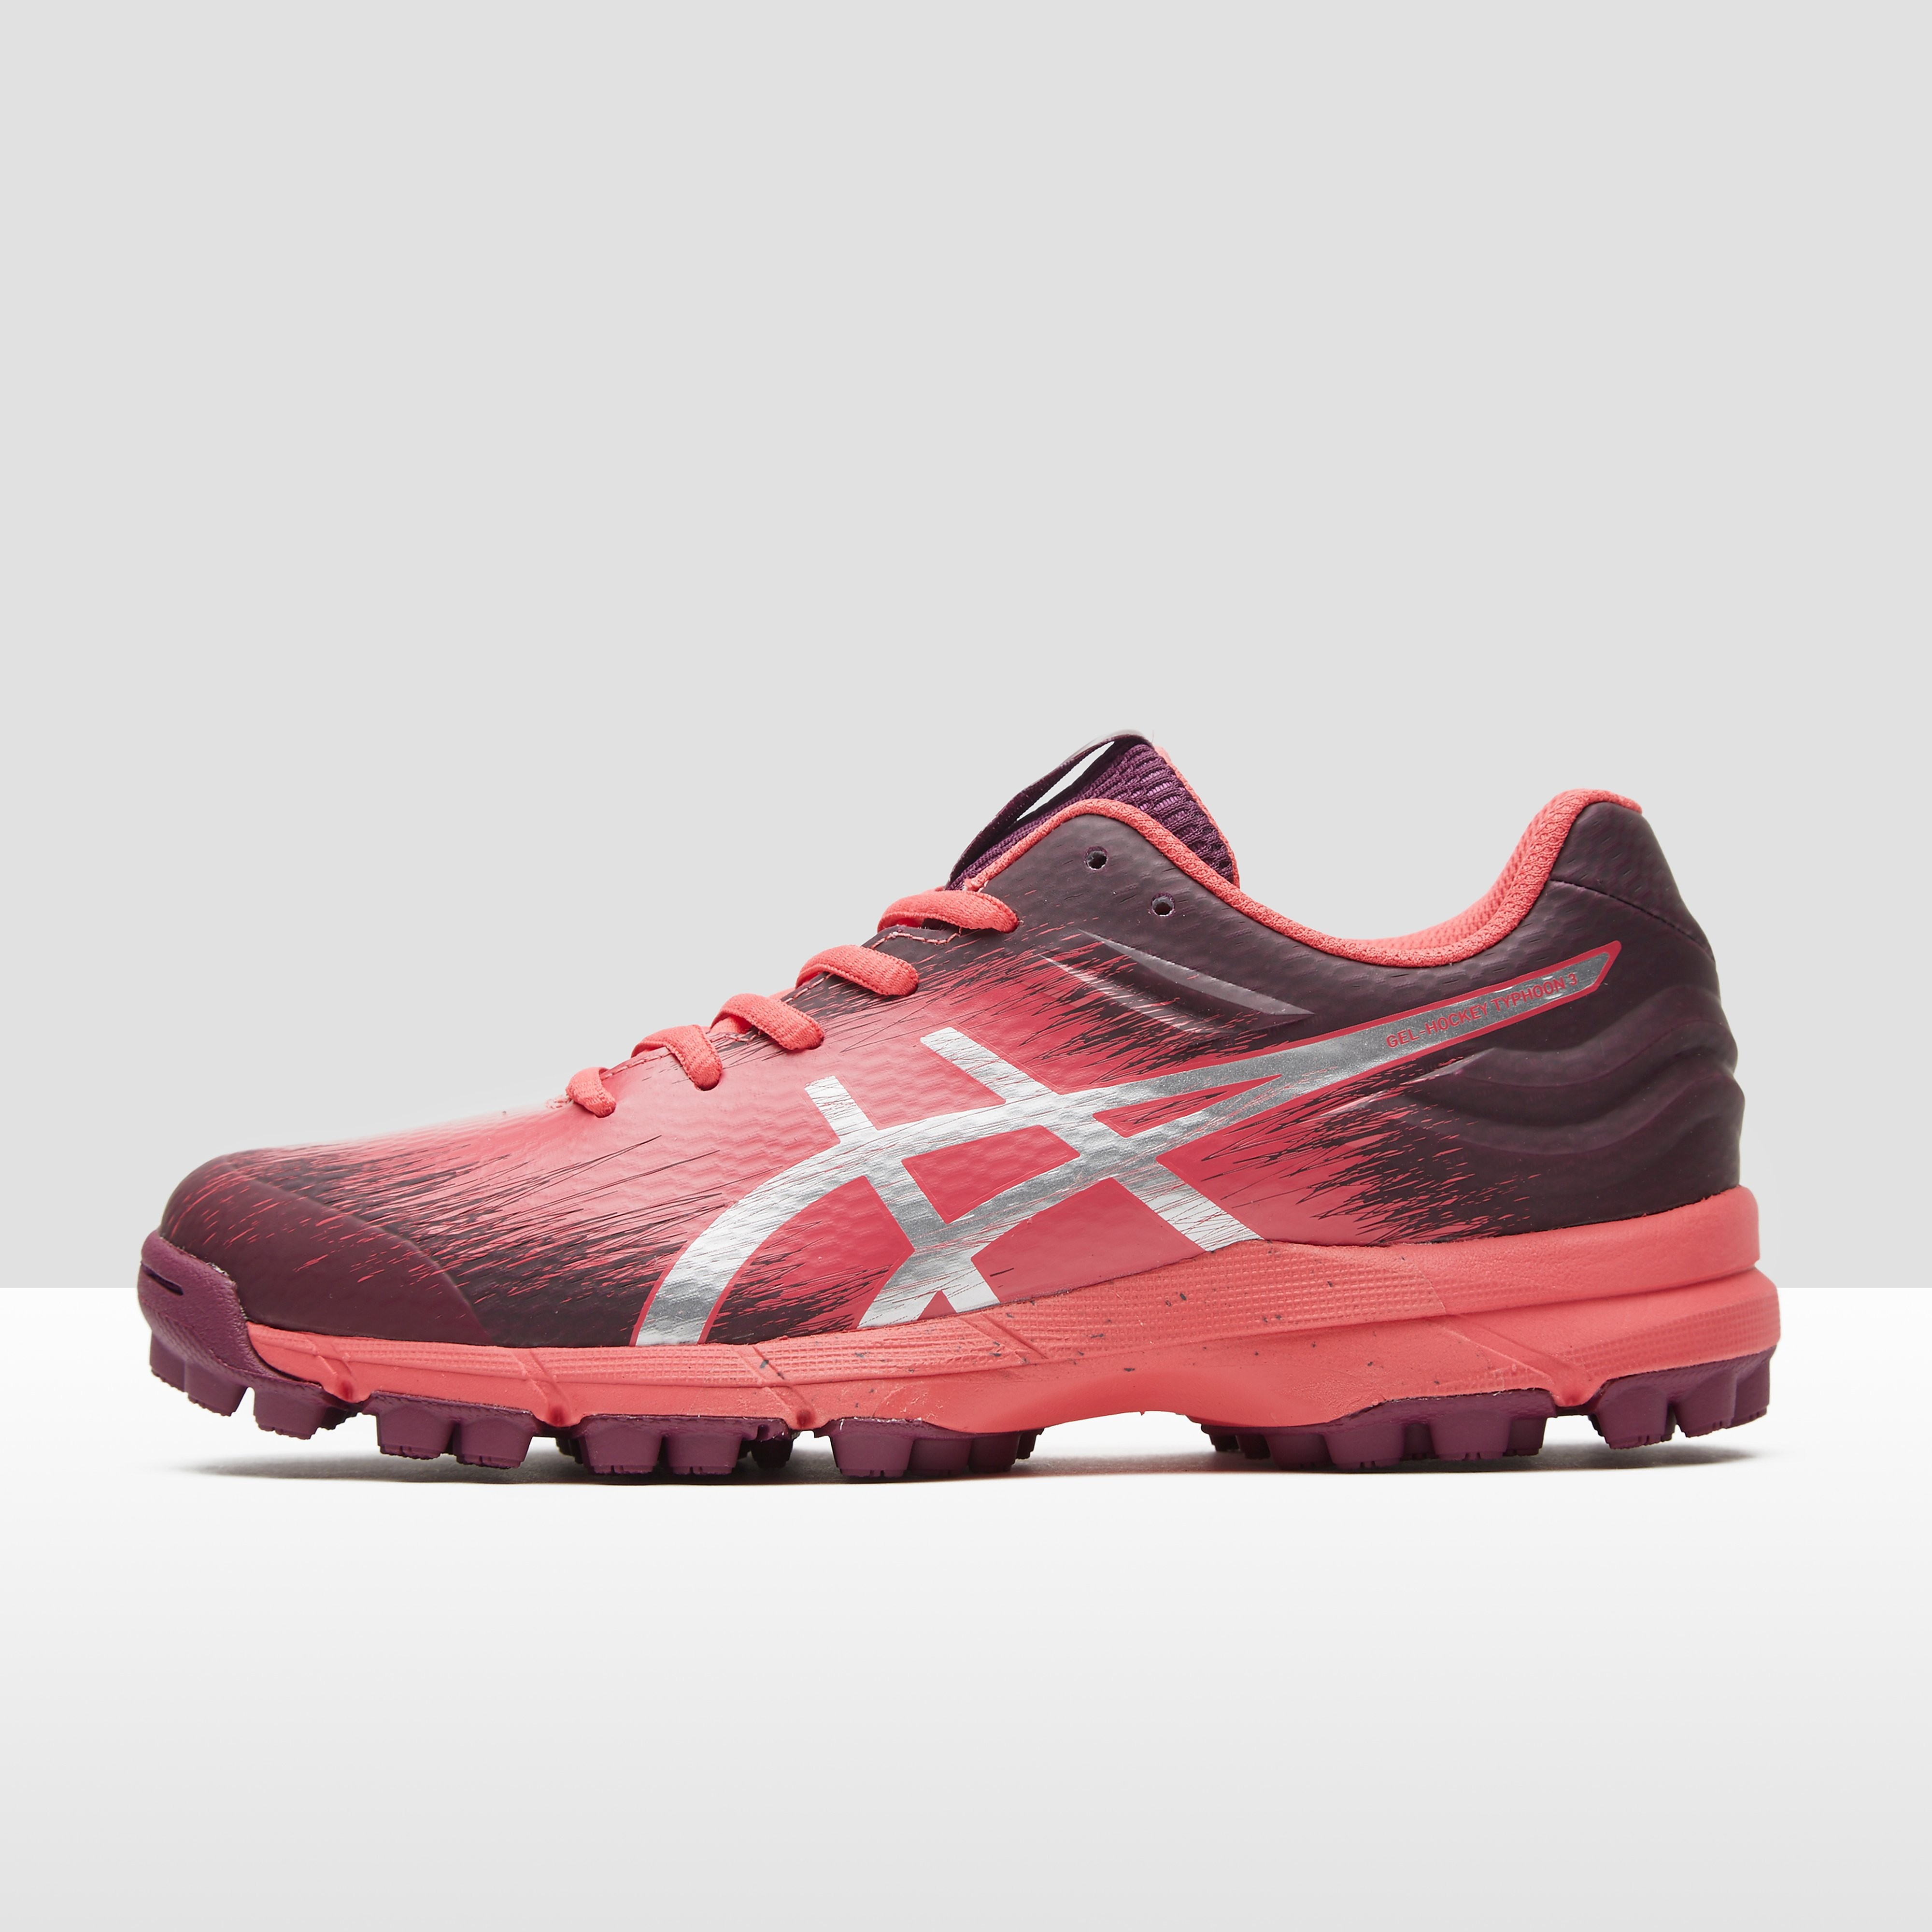 ASICS GEL-Hockey Typhoon 3 Women's Shoes